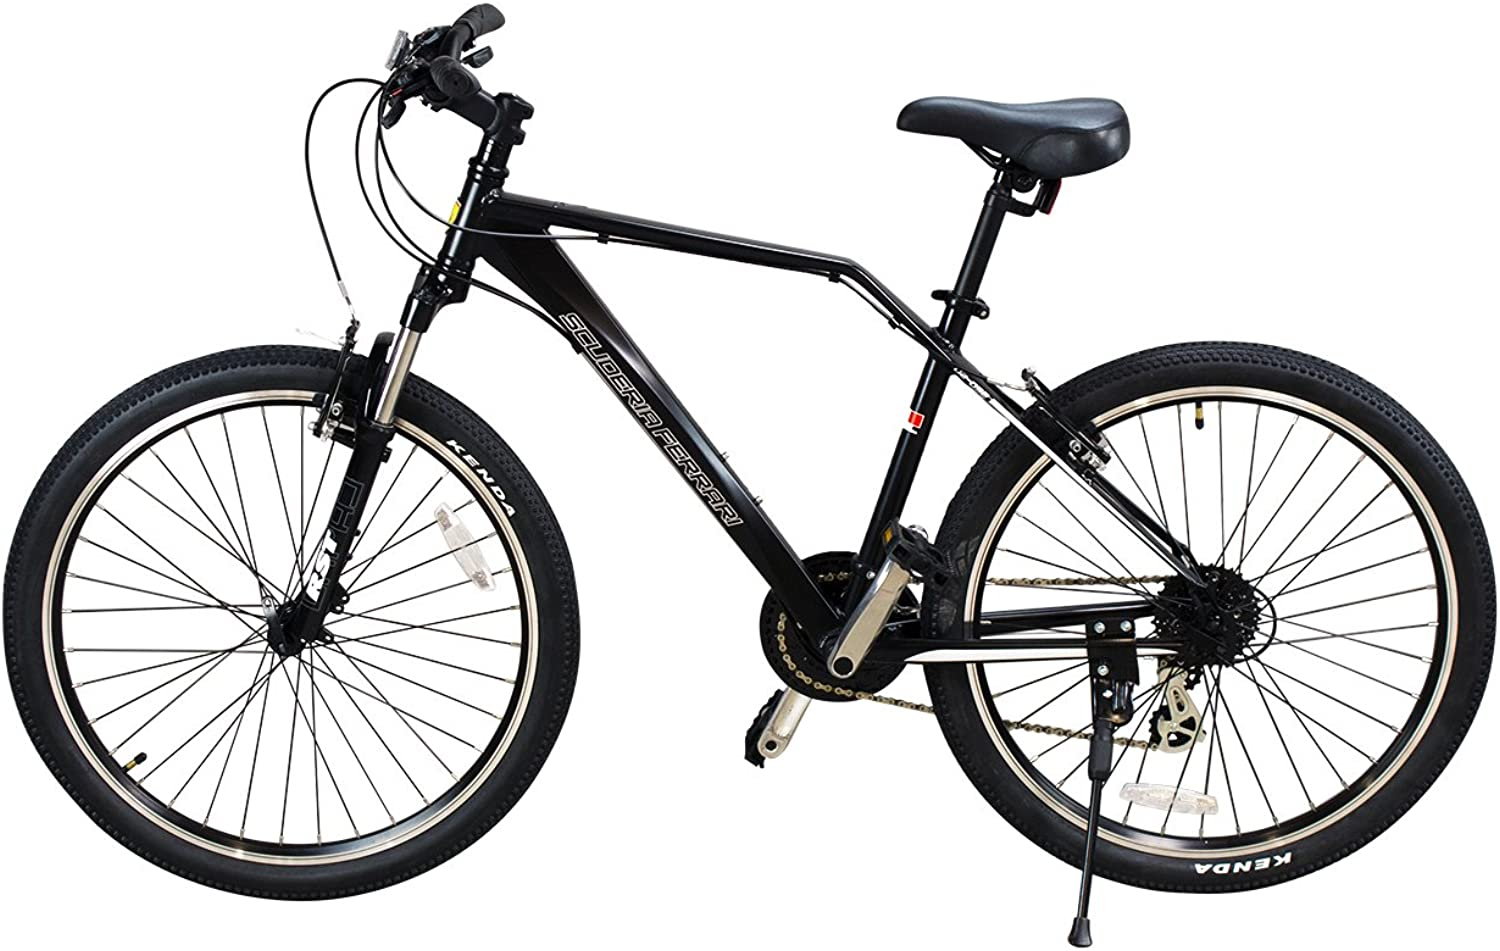 Ferrari® Alloy MTB Series 24speed Front Suspension Mountain Bicycle Bike (Black)